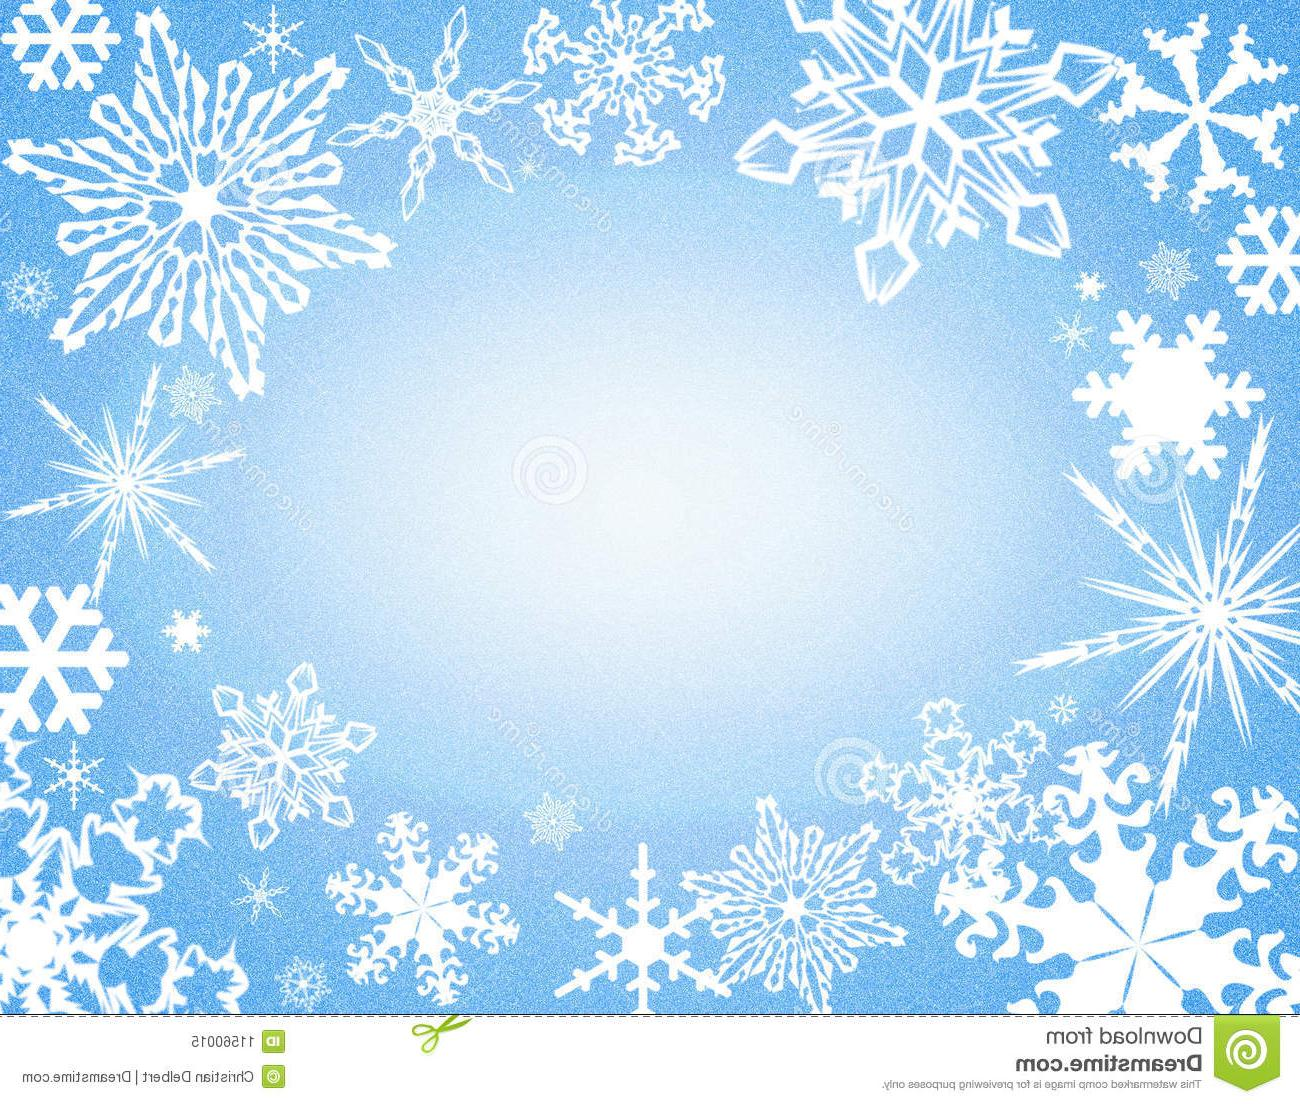 Best HD Blue Snowflake Border Clip Art File Free » Free Vector Art.